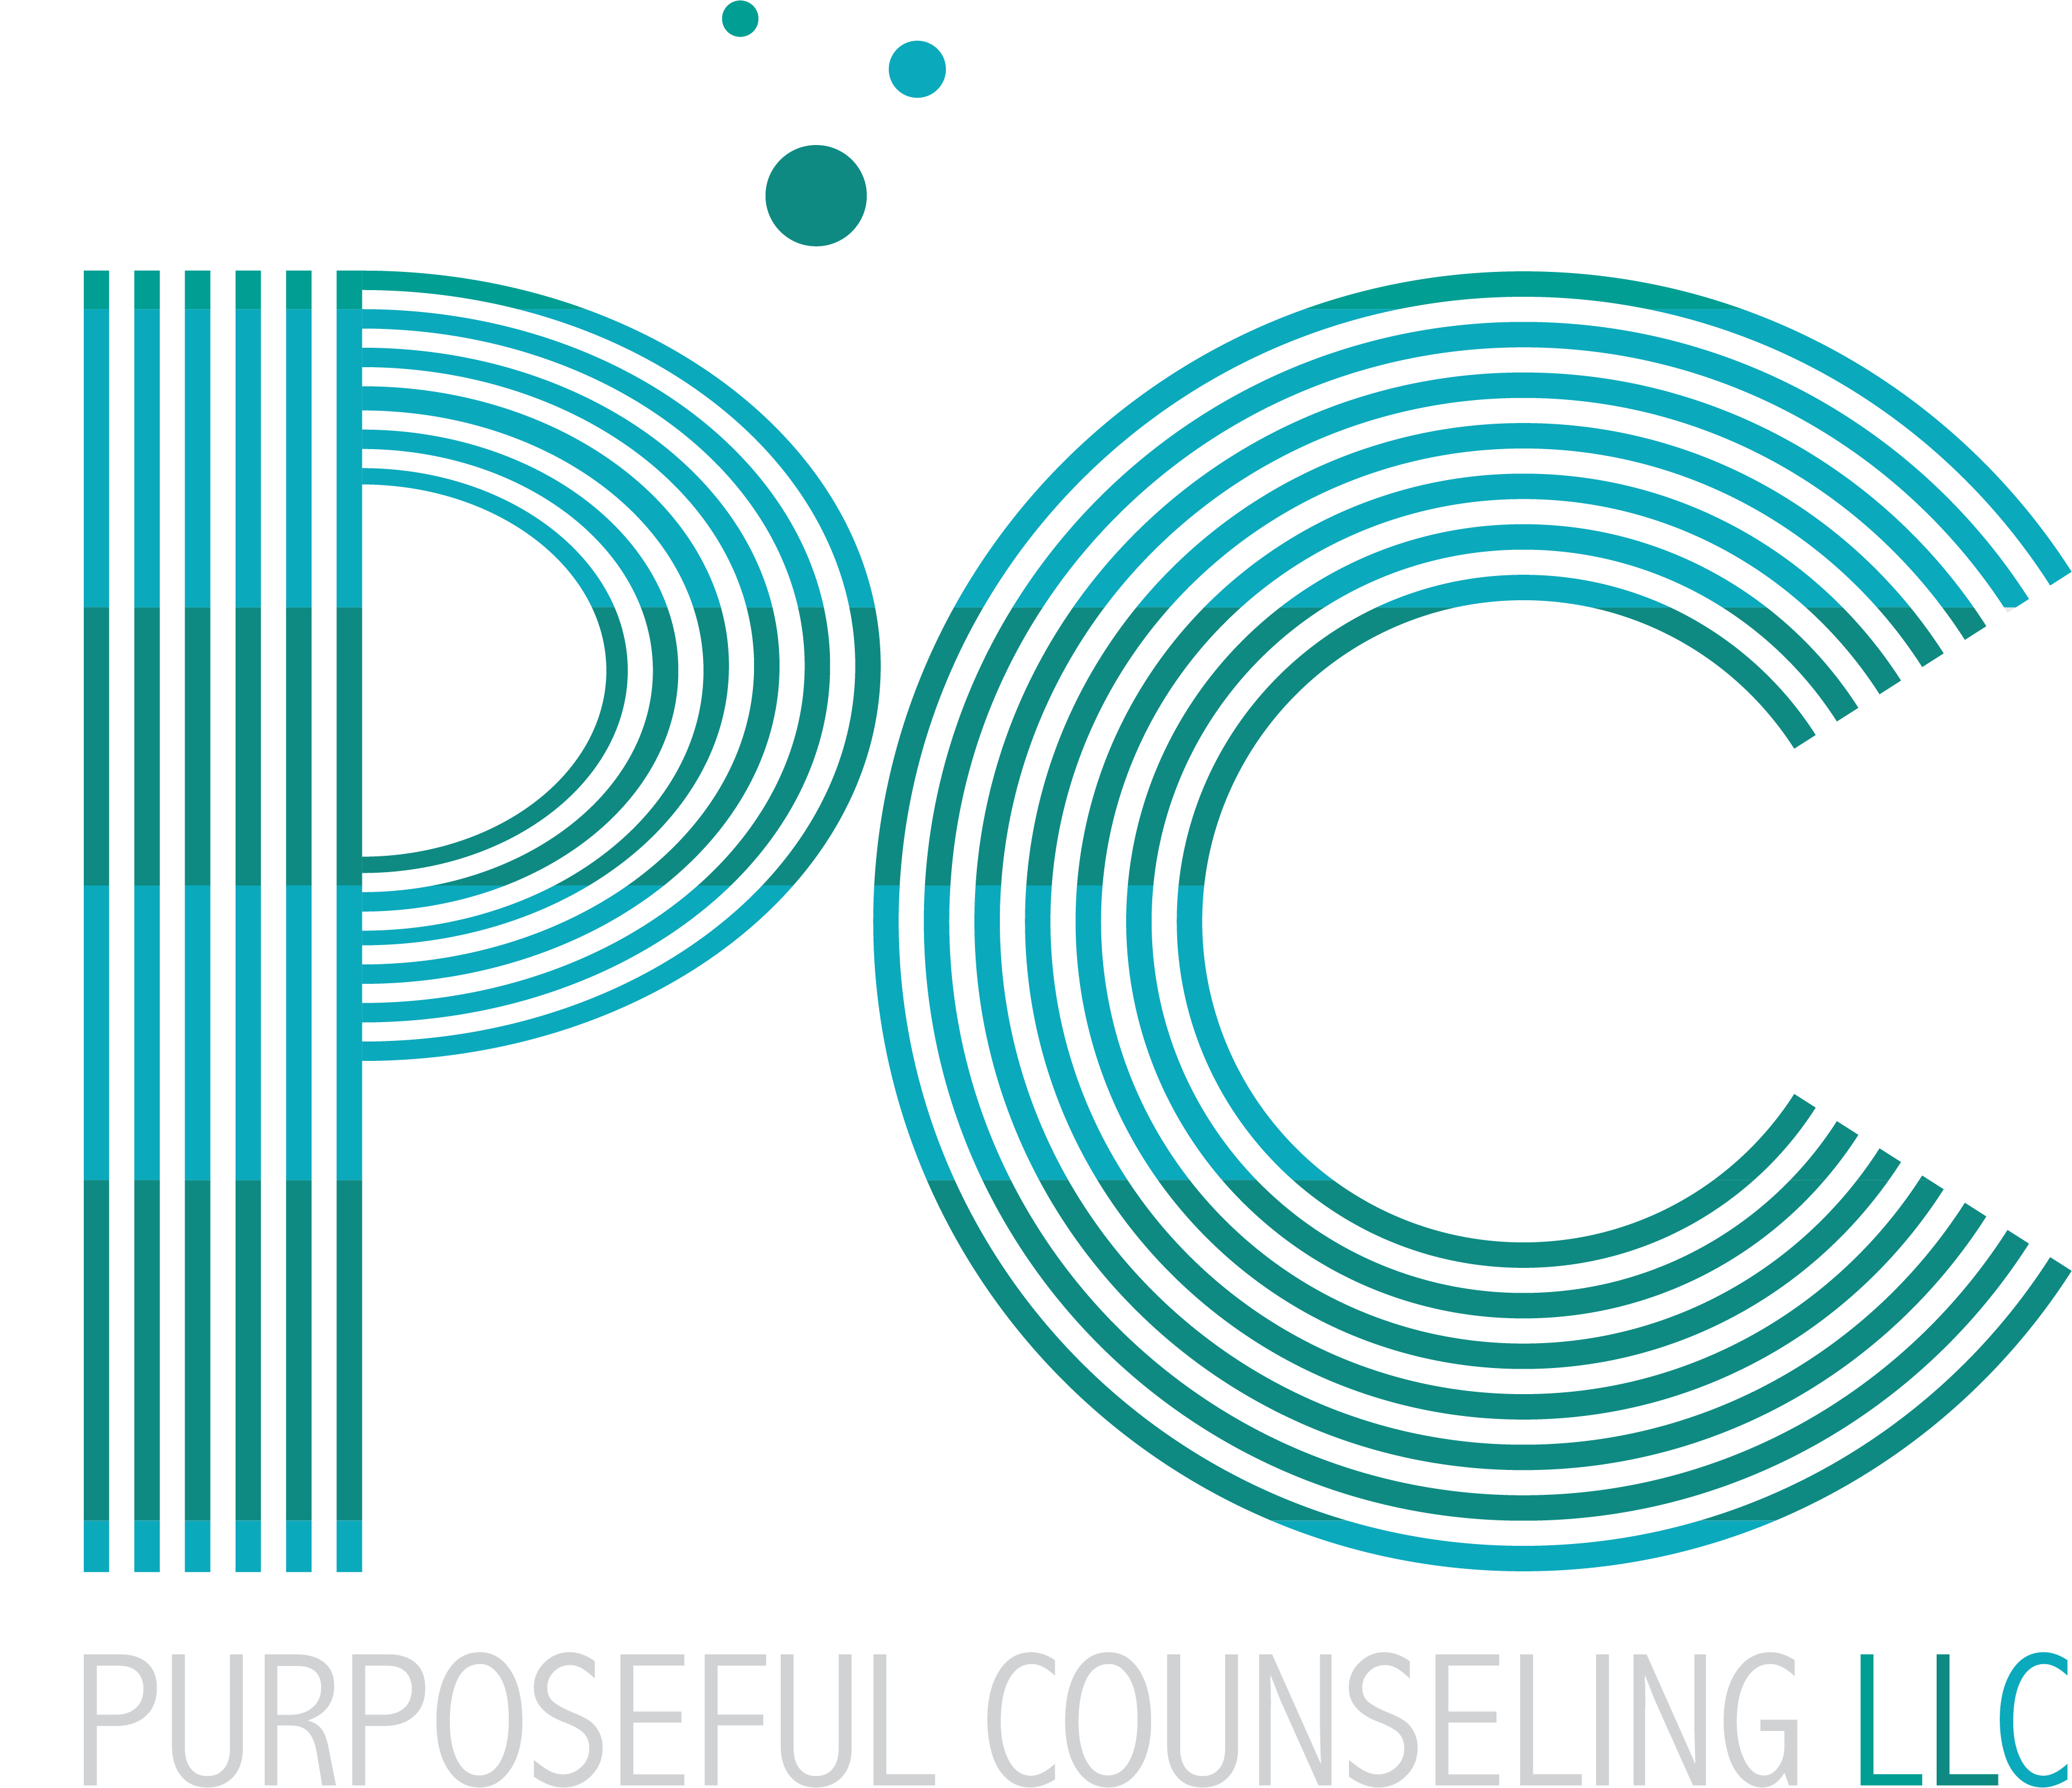 Purposeful Counseling